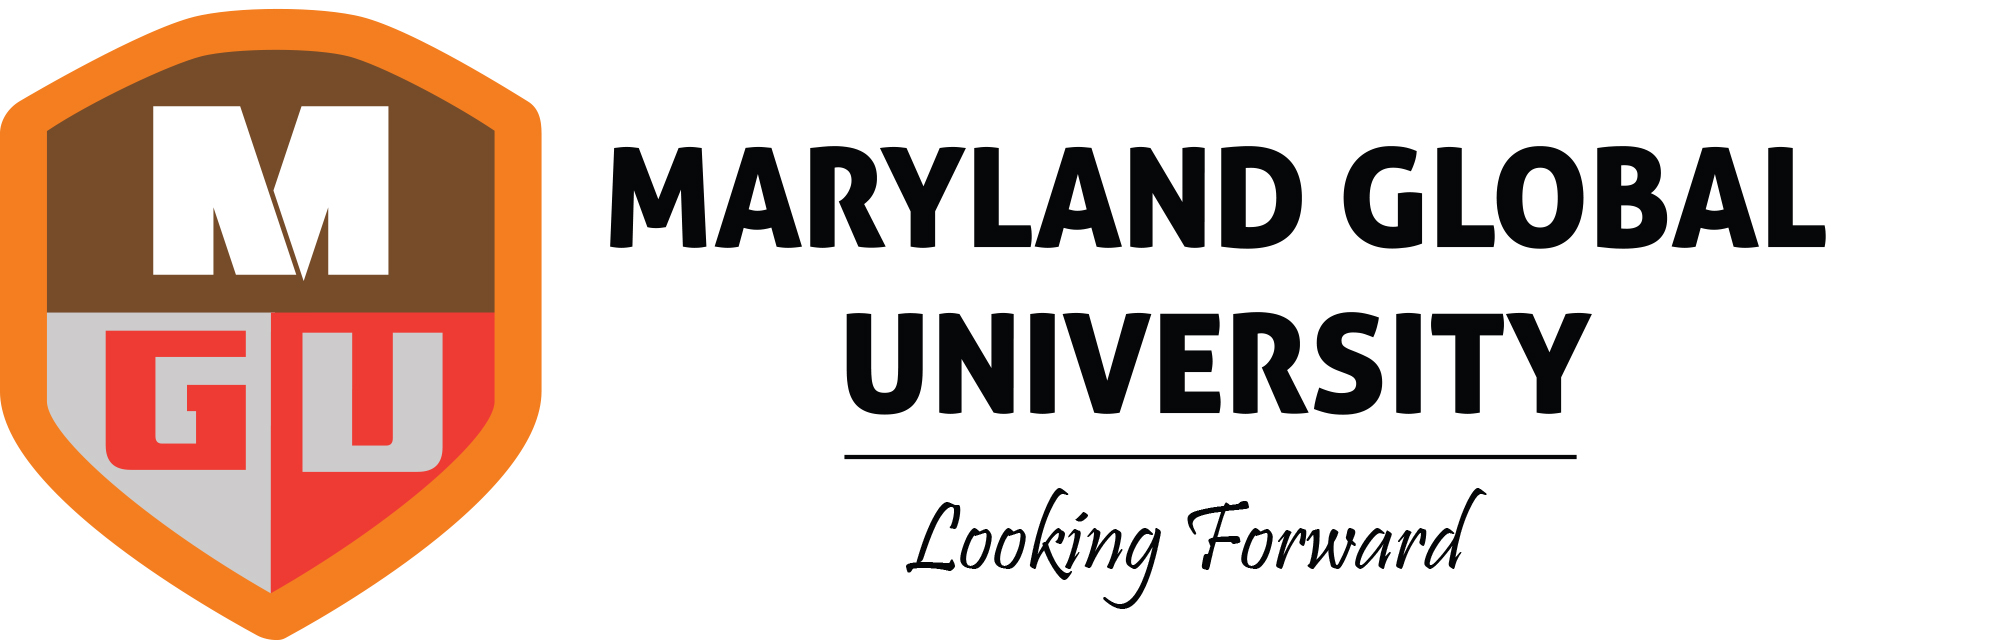 Maryland Global University